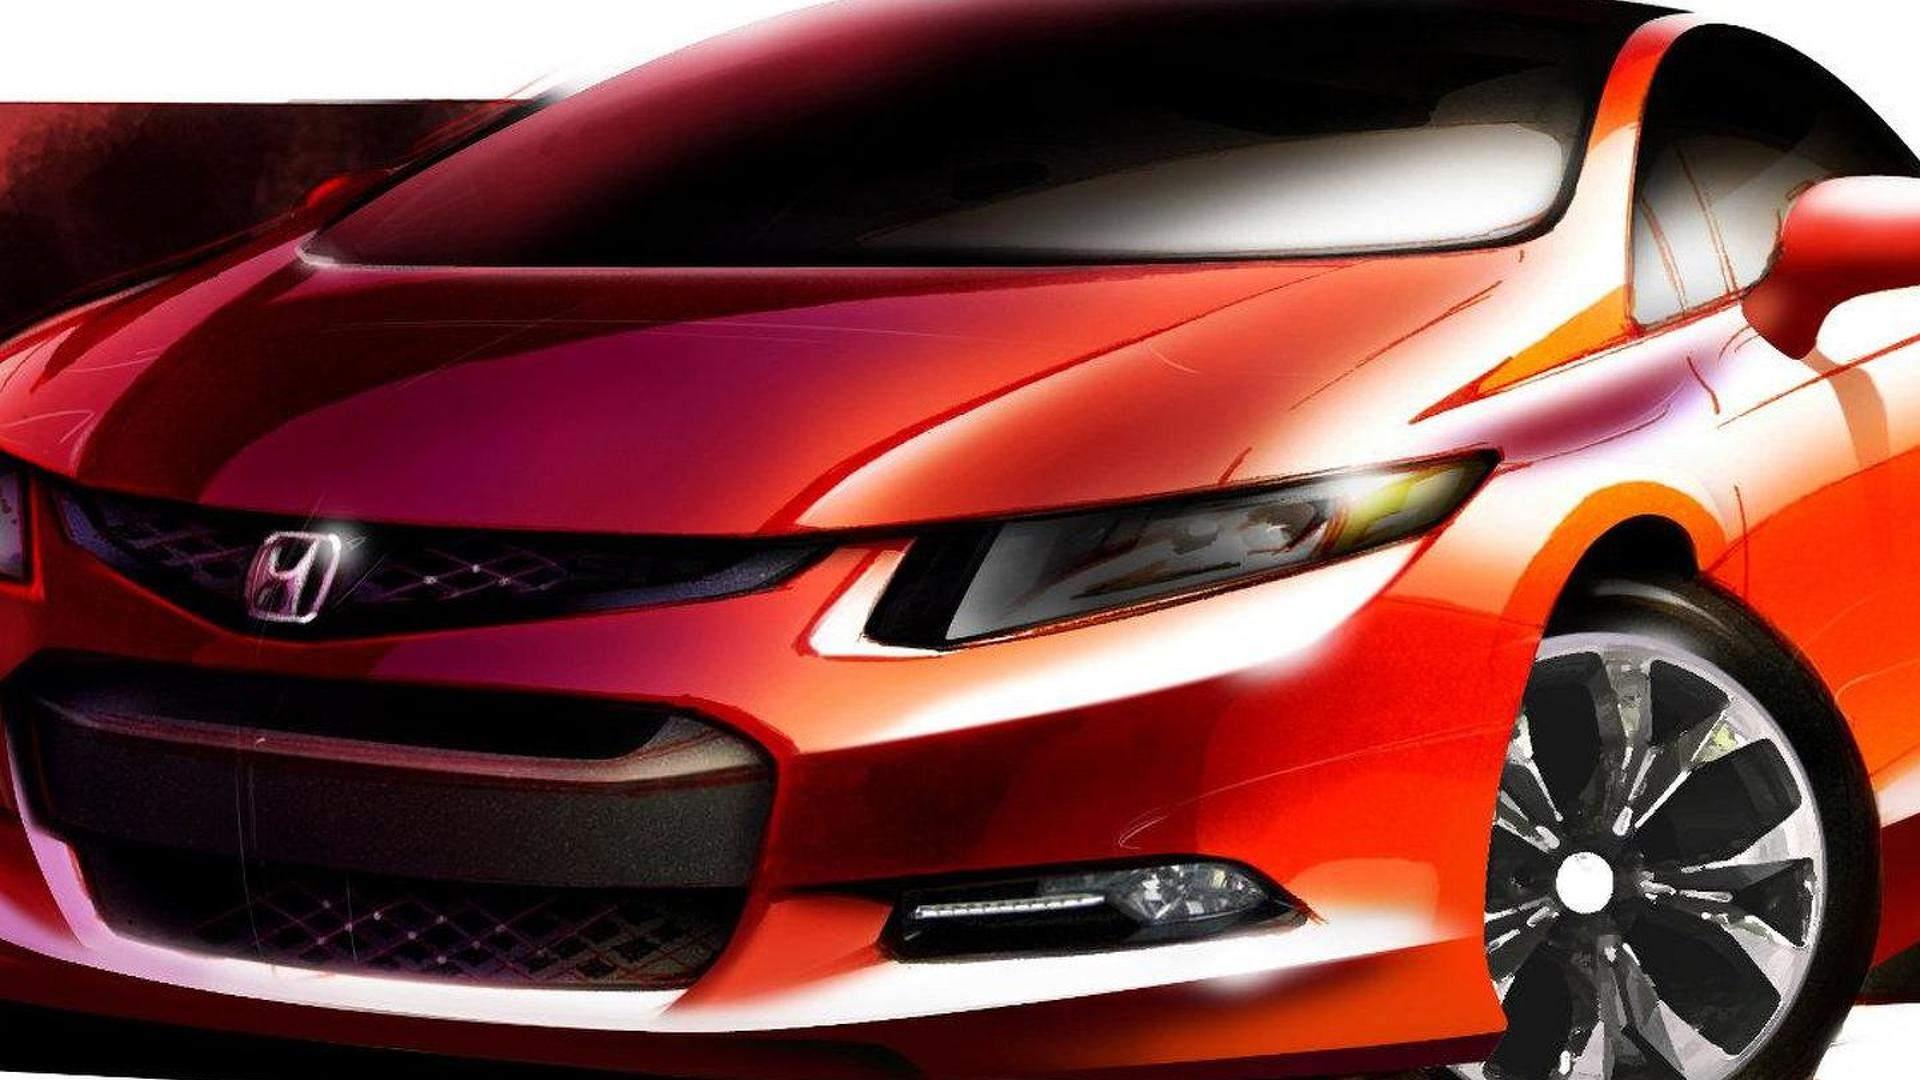 Honda Civic Concept previewed for world debut in Detroit